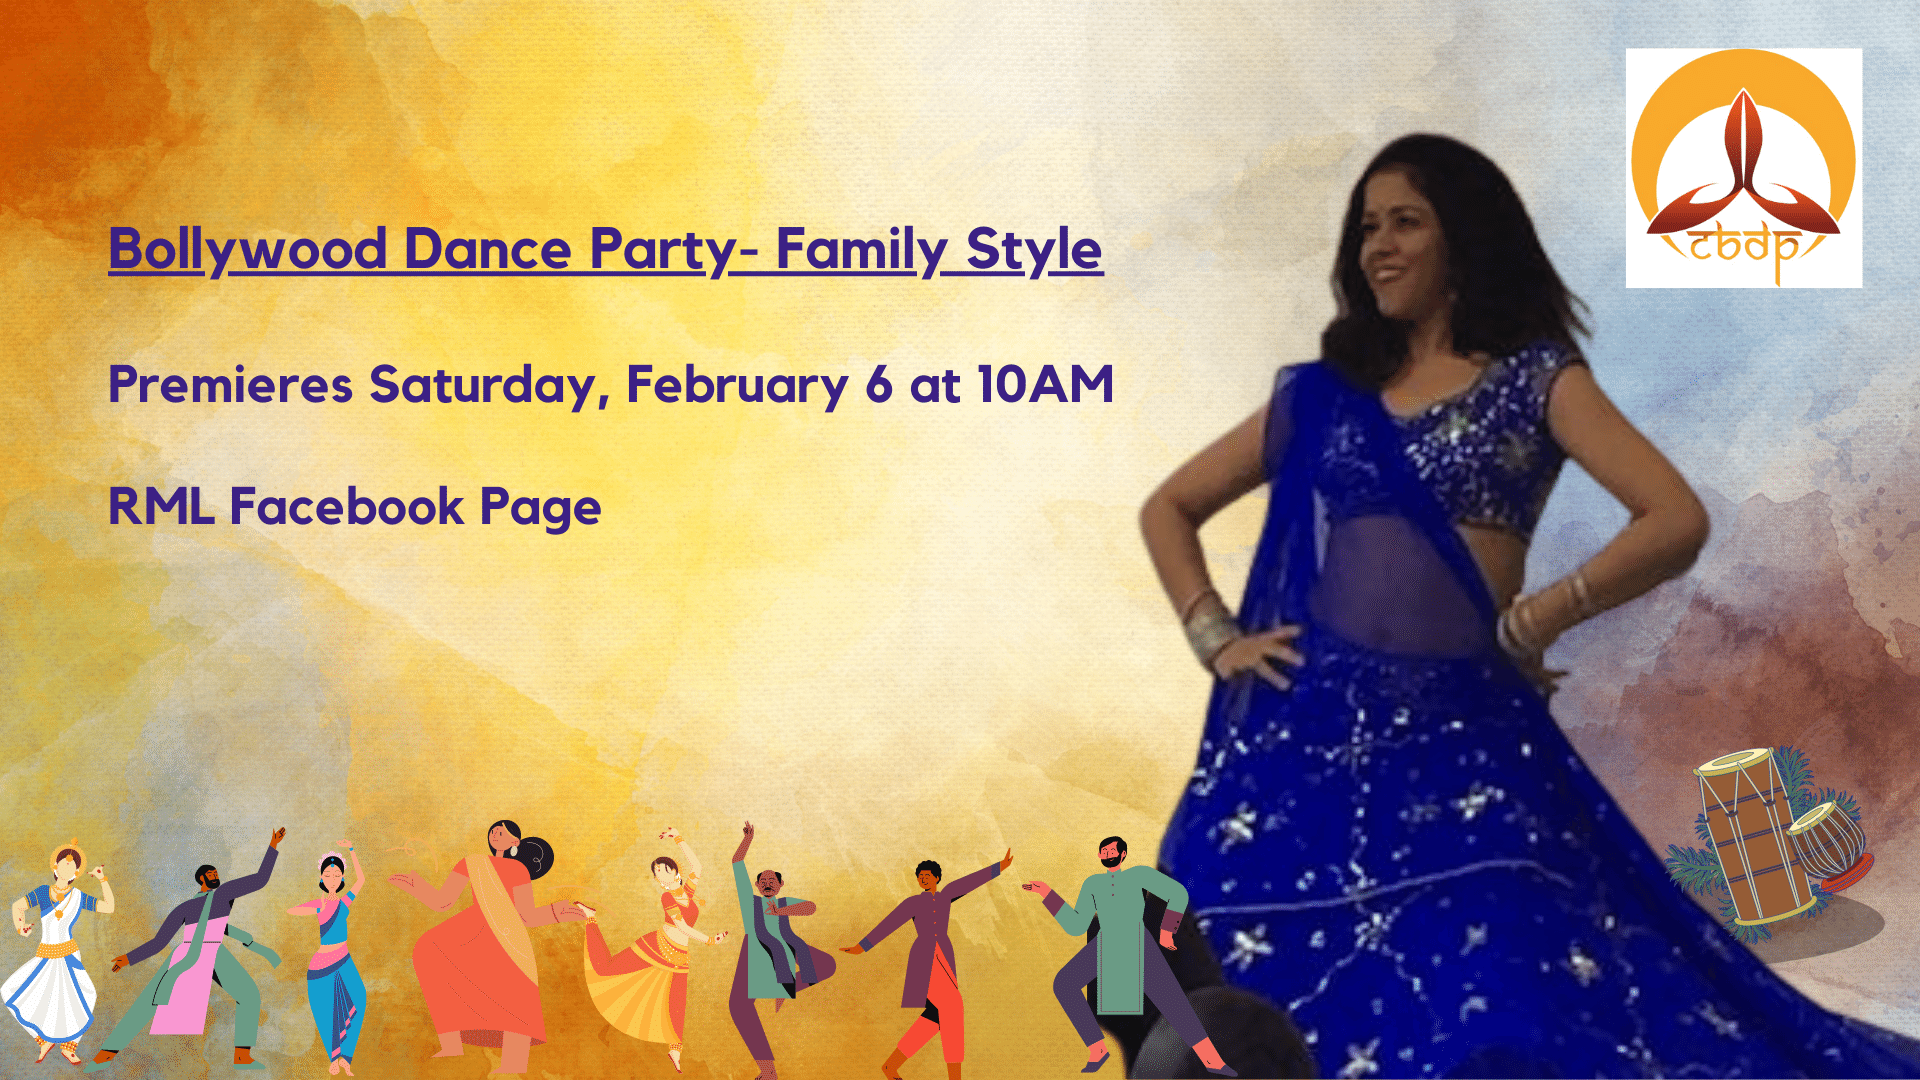 Bollywood Dance Party - Family Style